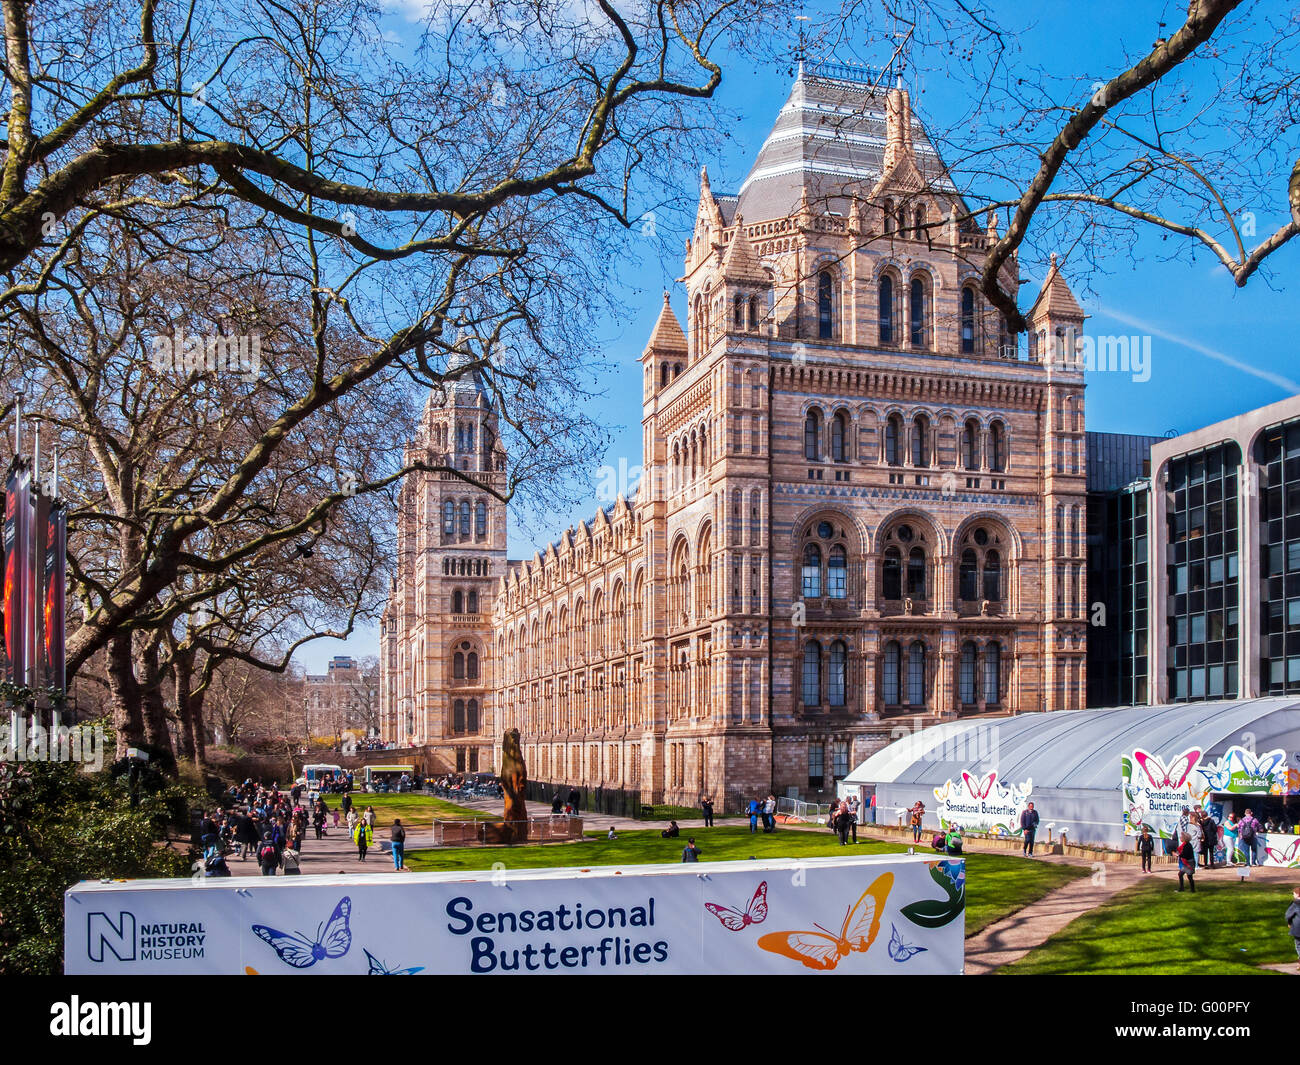 The Natural History Museum, London - Stock Image